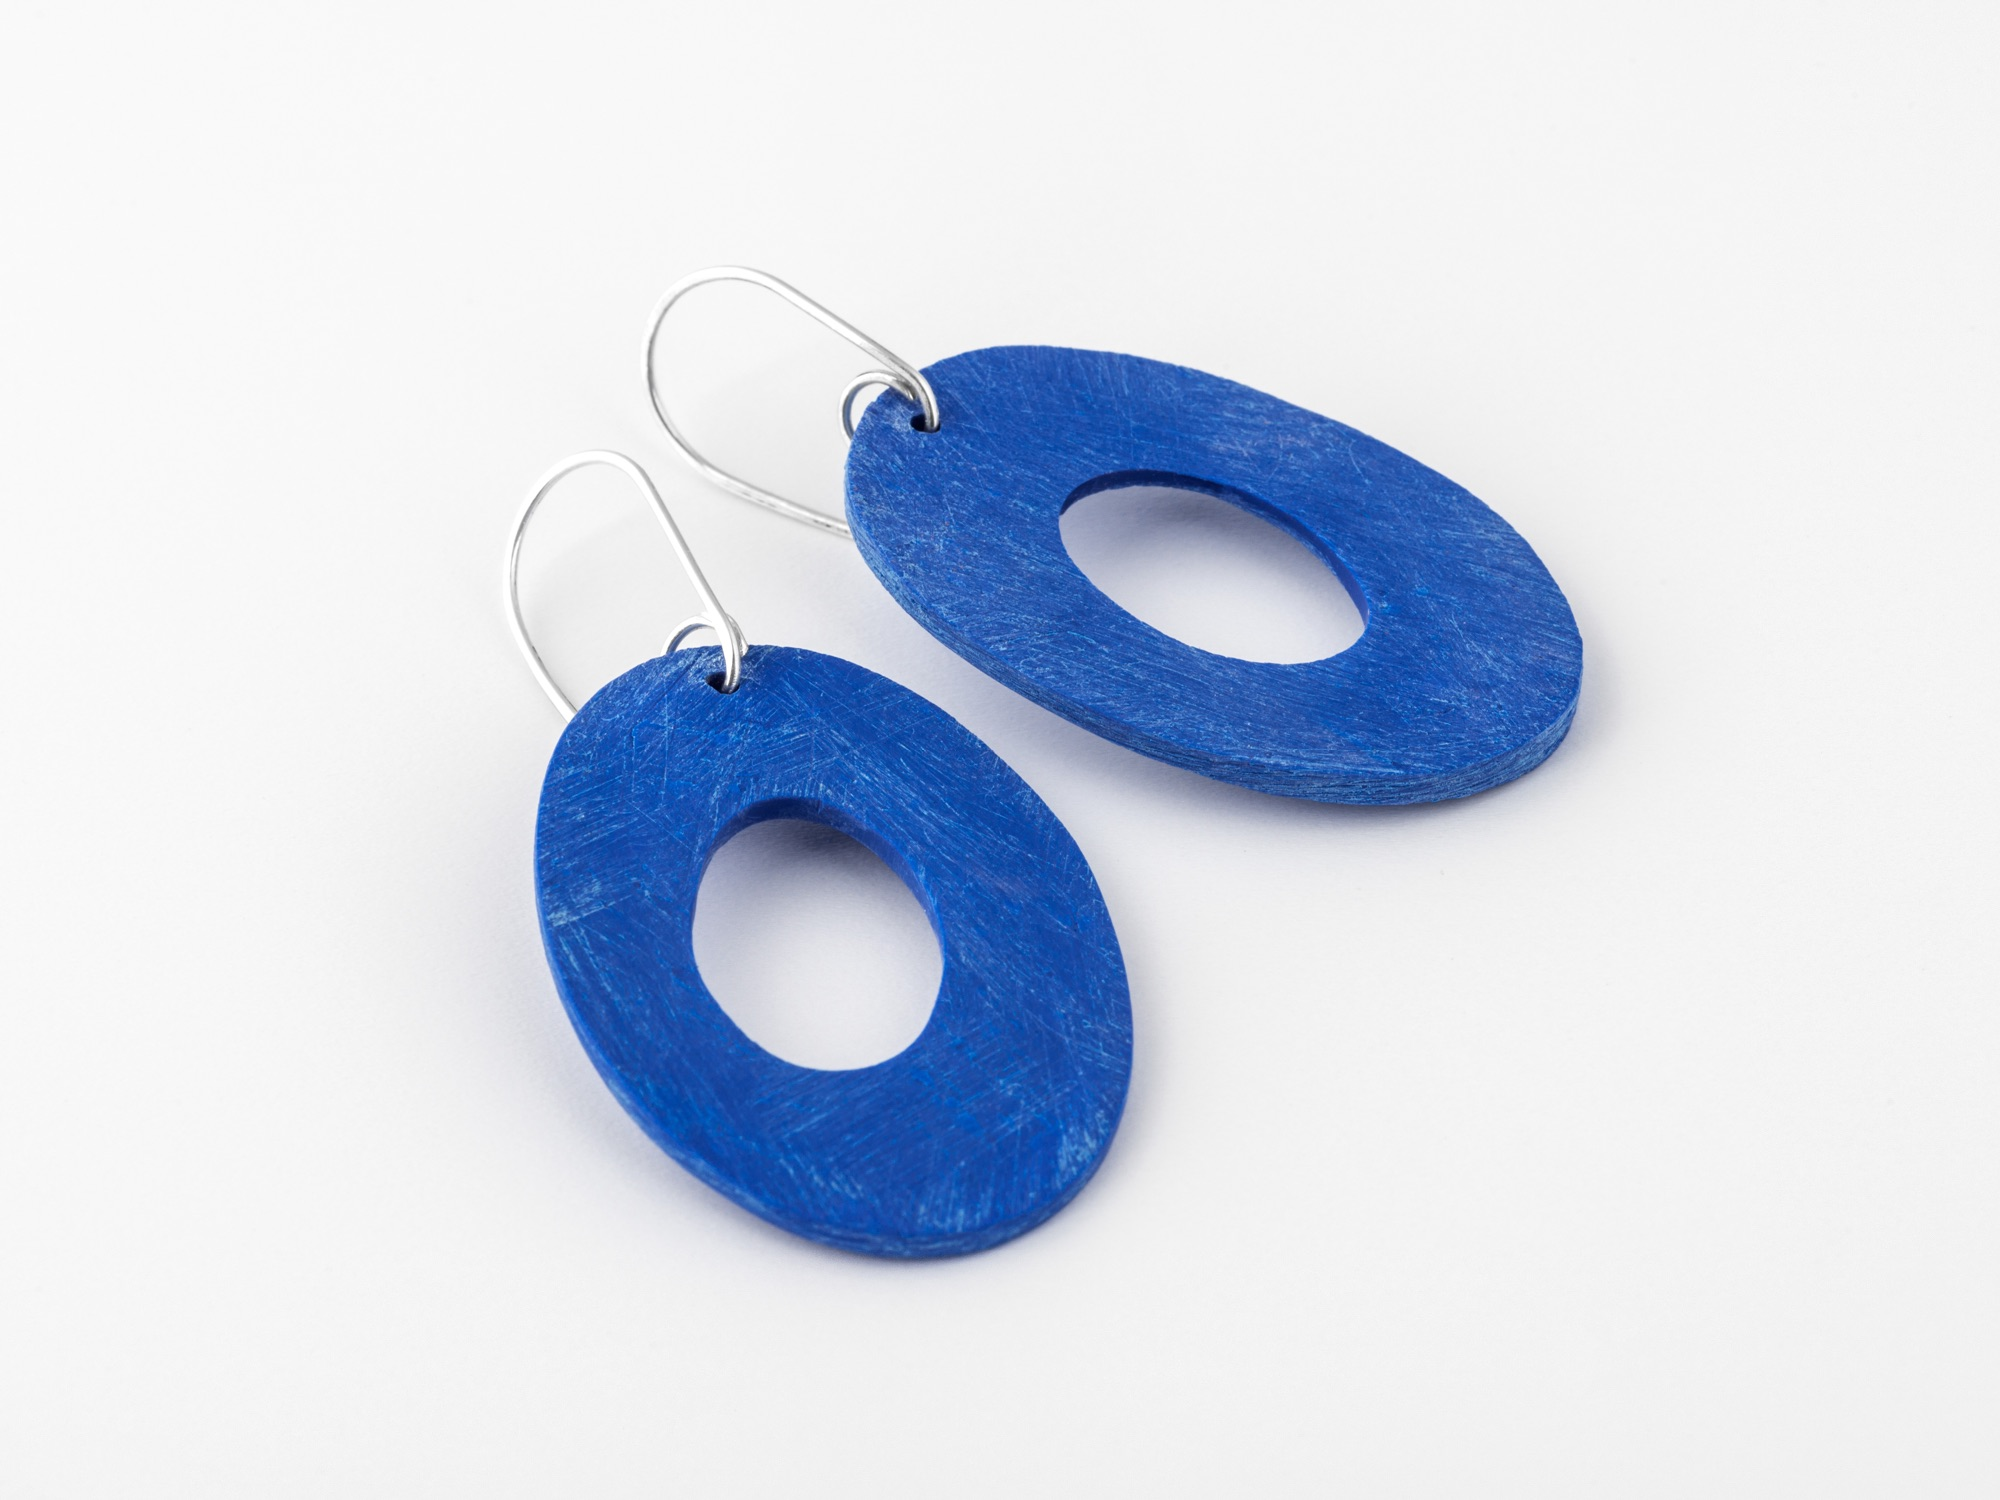 cobalt blue large oval earrings by Clare Lloyd